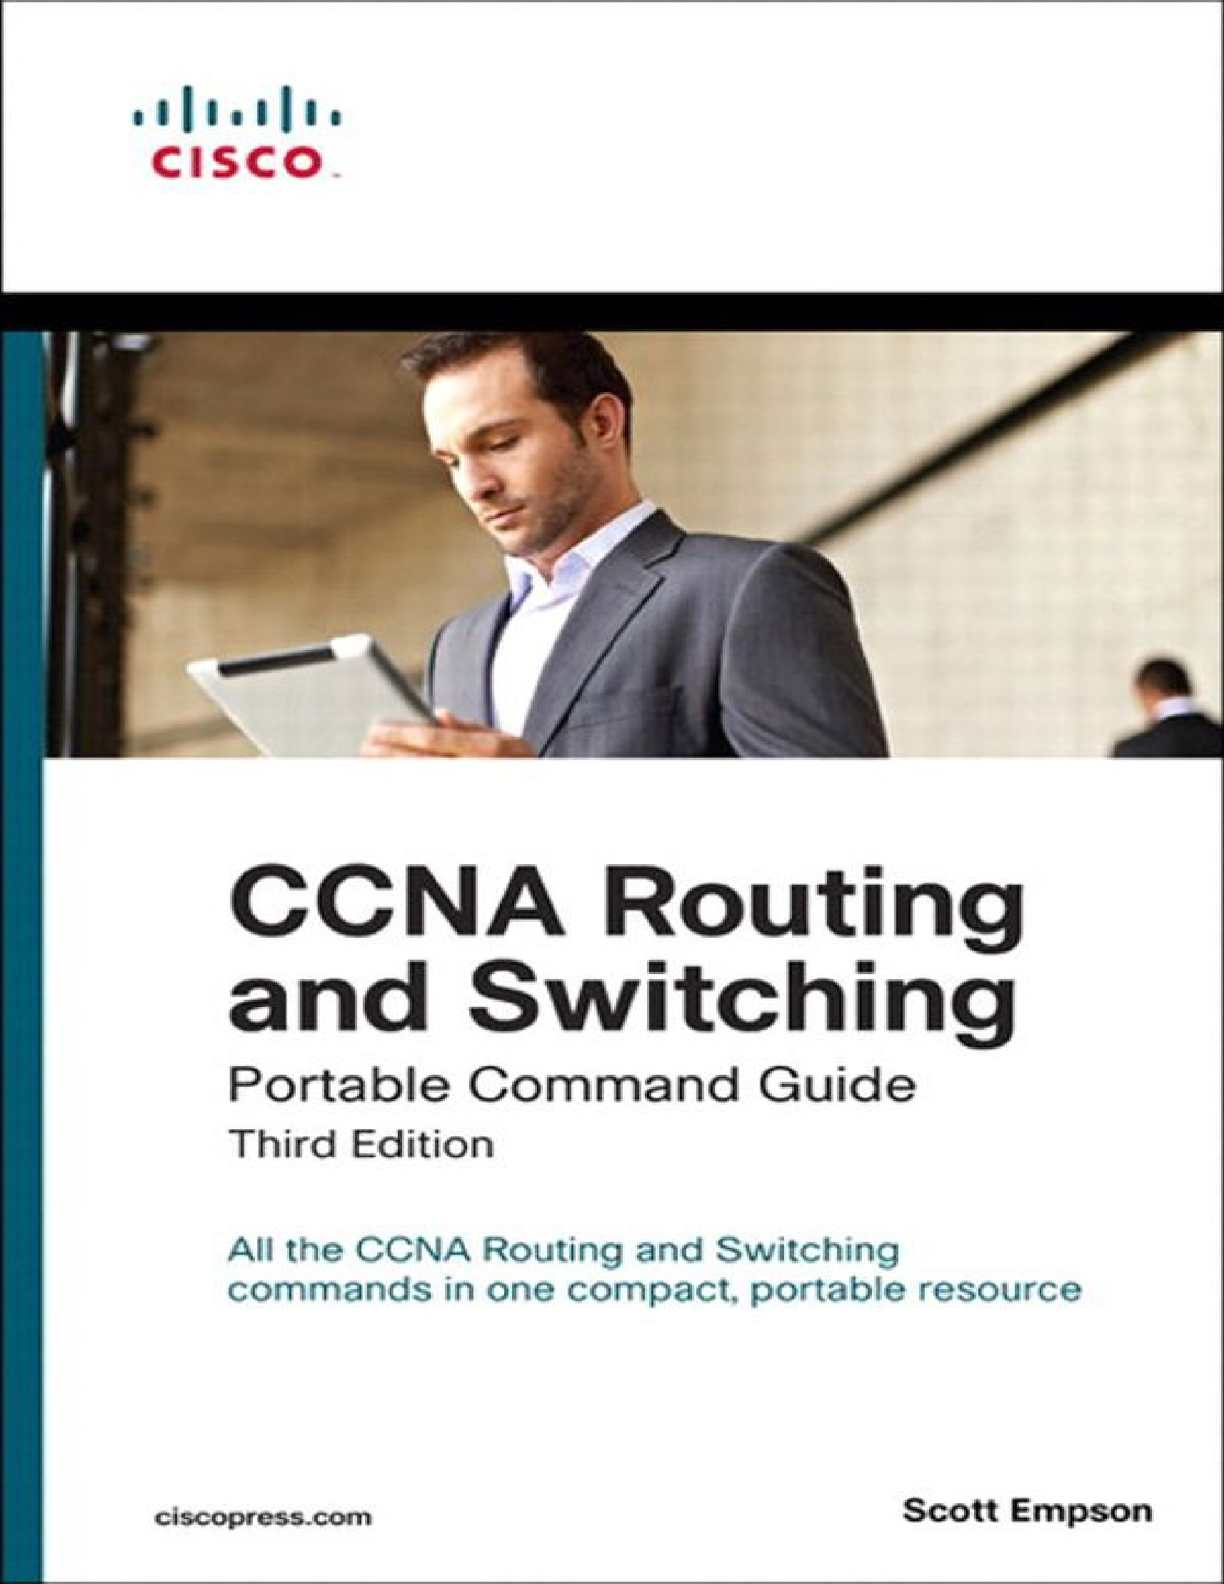 Ccna Routing And Switching Portable Command Guide (3rd Edition) Scott Empson